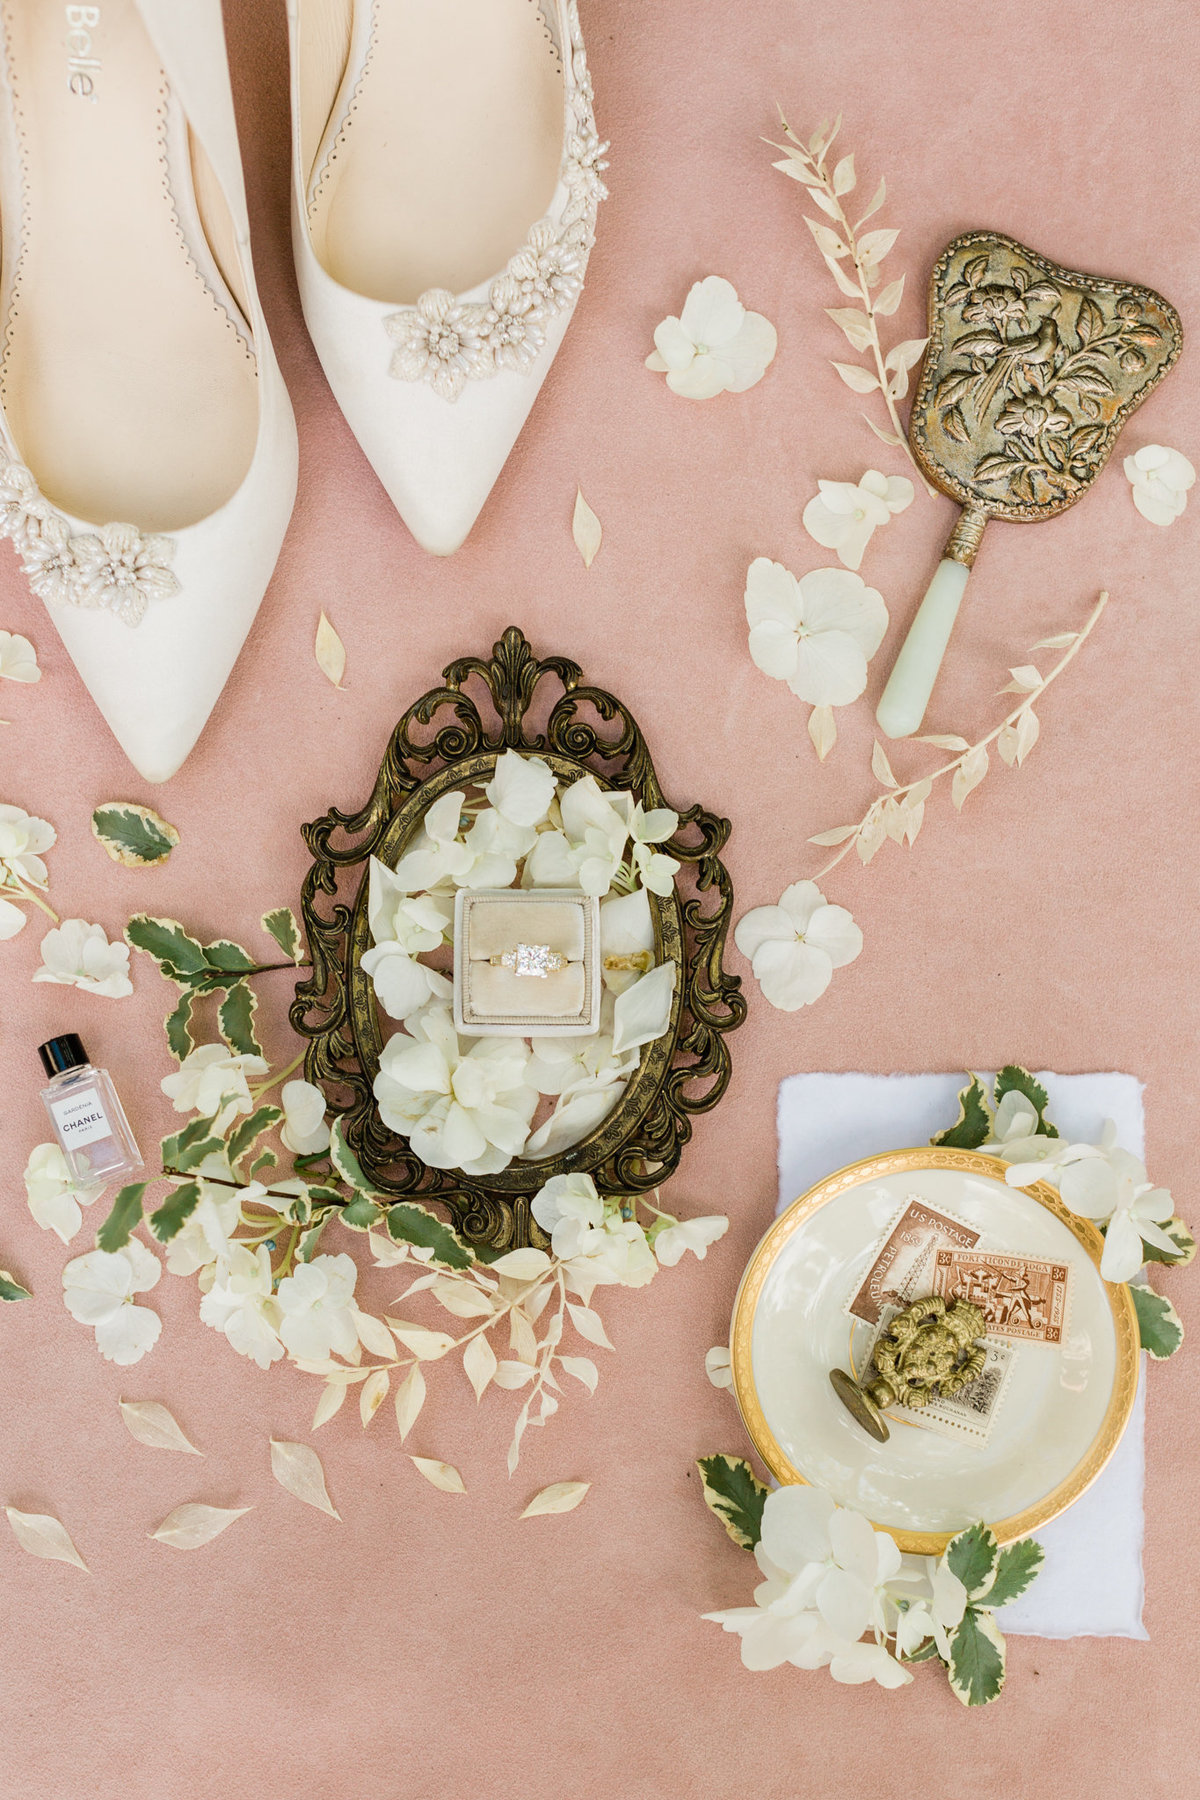 blush and white wedding details